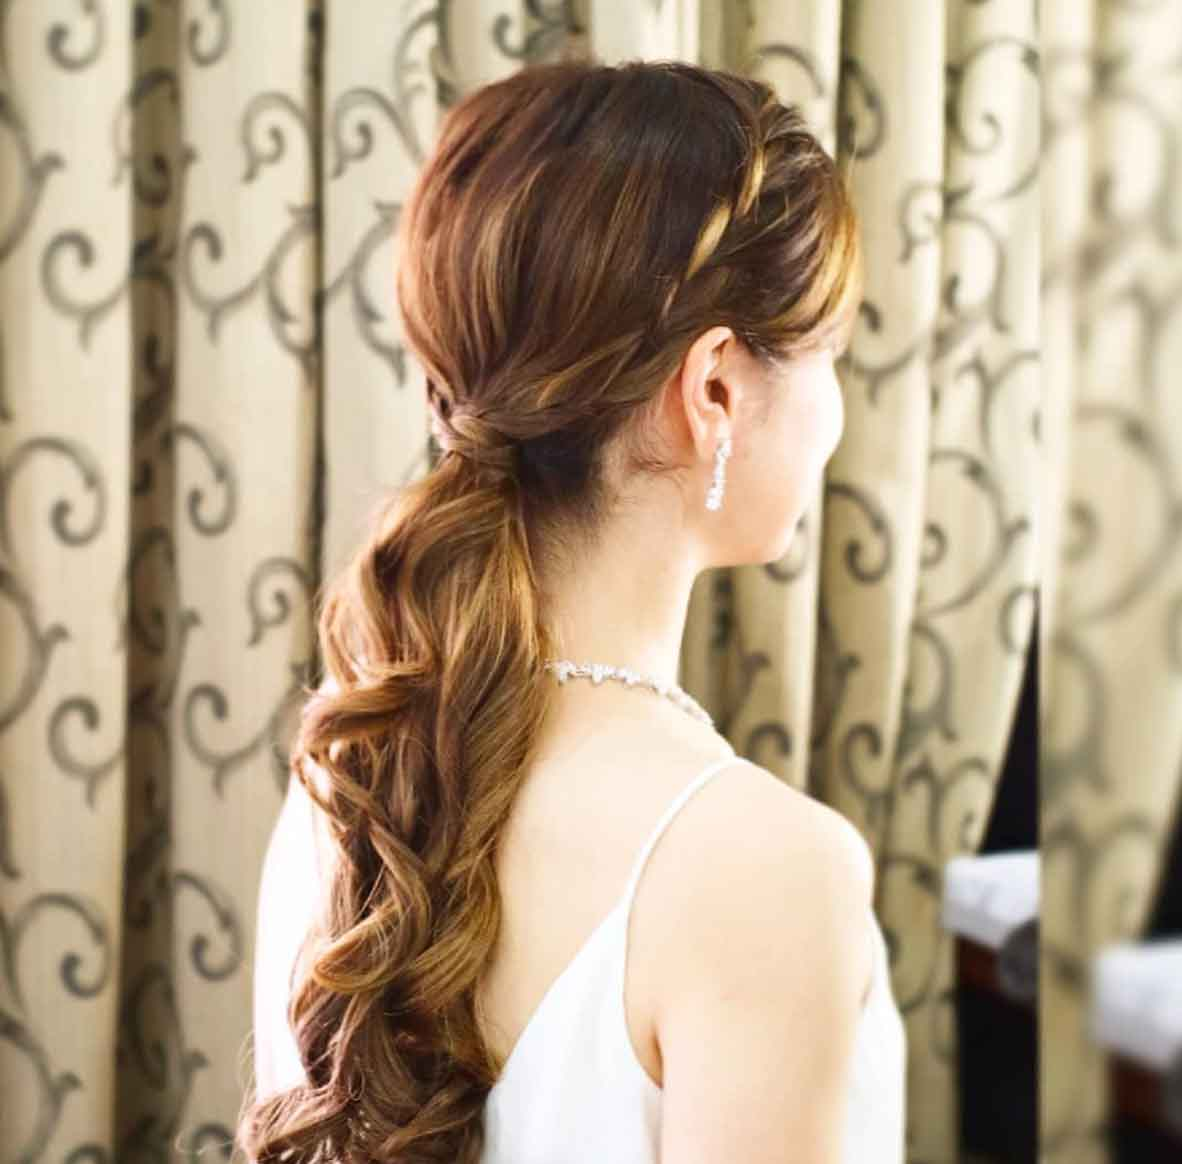 Natural Makeup & Hair for Bride On Wedding Day-9